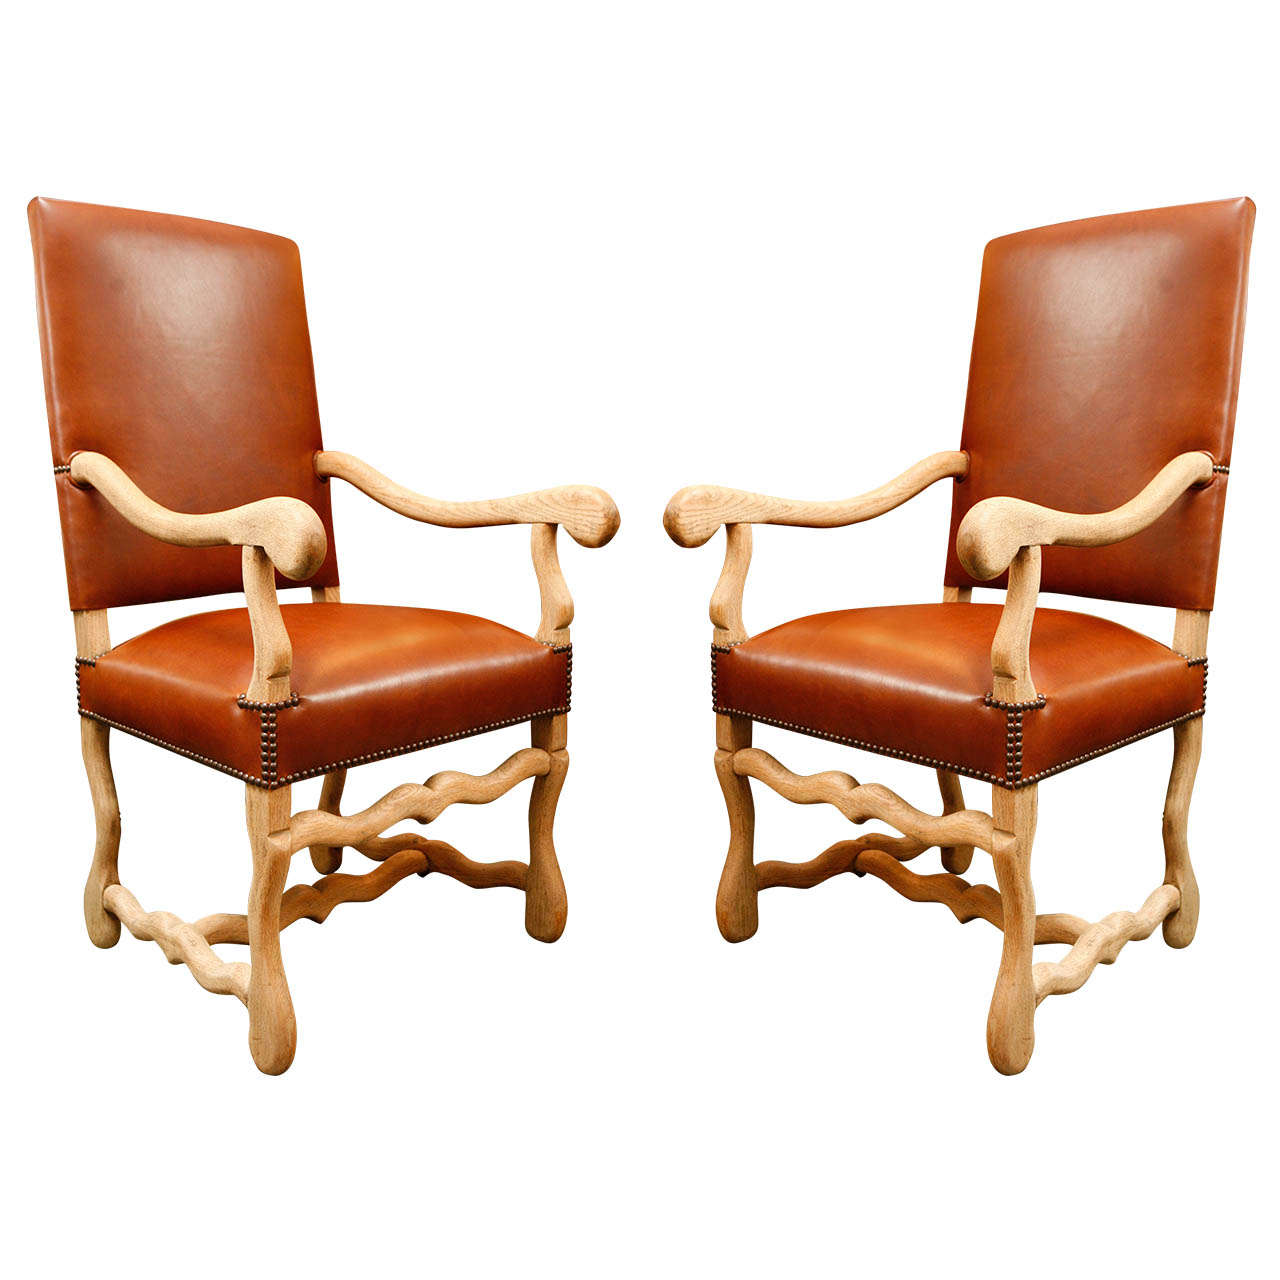 19th c. Pair of Chairs in Beechwood and Elm, Upholstered in Leather.